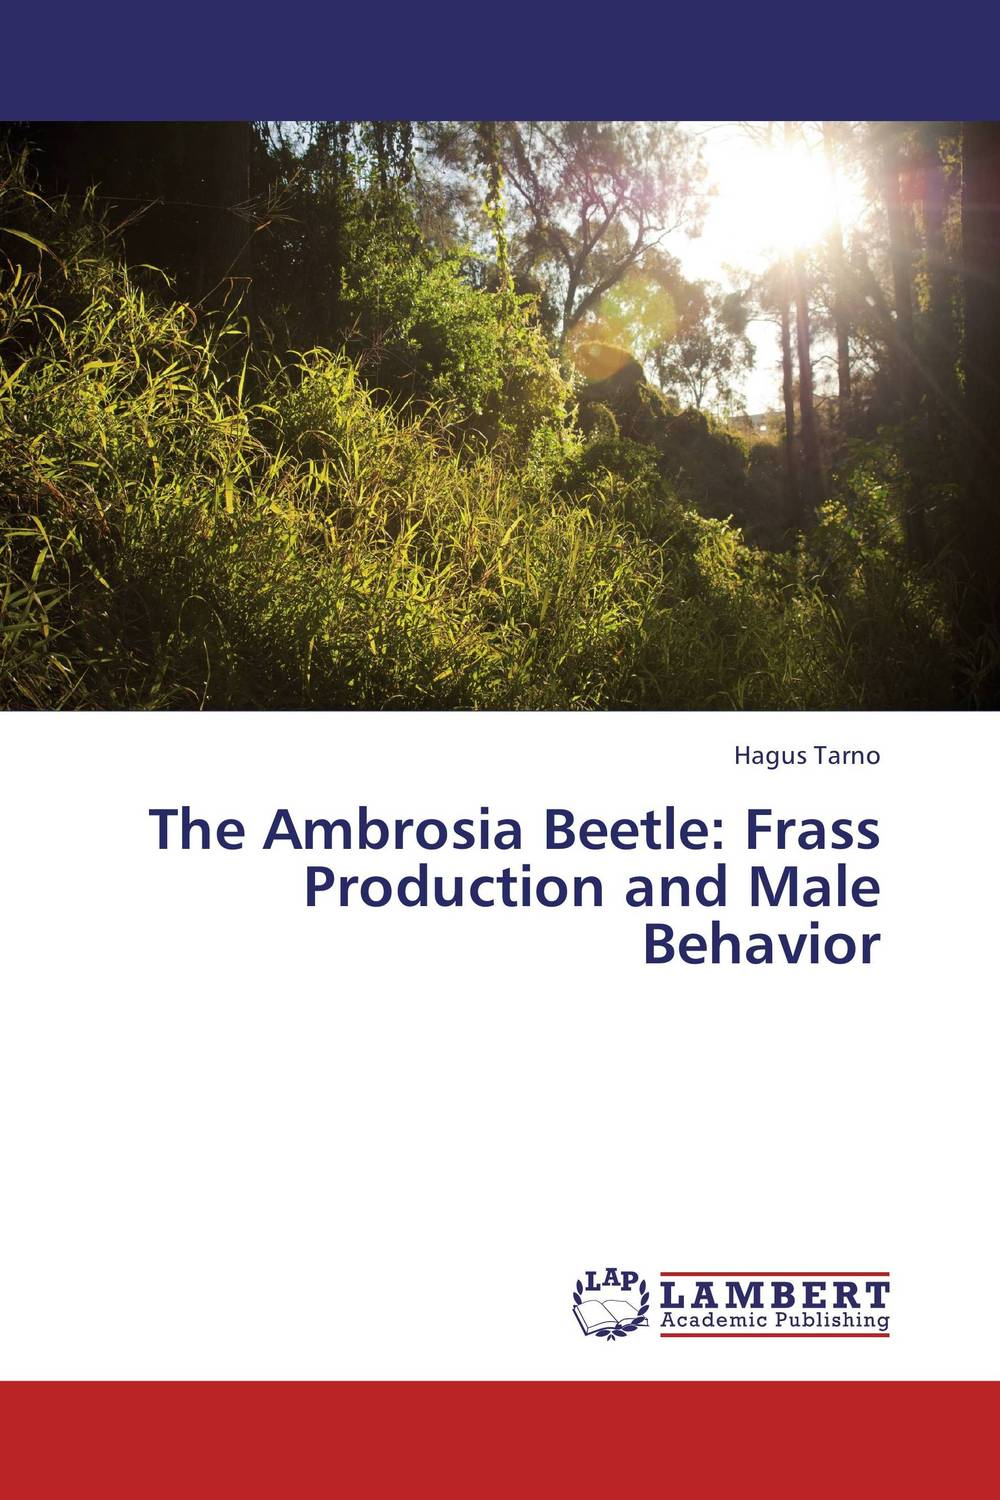 The Ambrosia Beetle: Frass Production and Male Behavior the ambrosia beetle frass production and male behavior